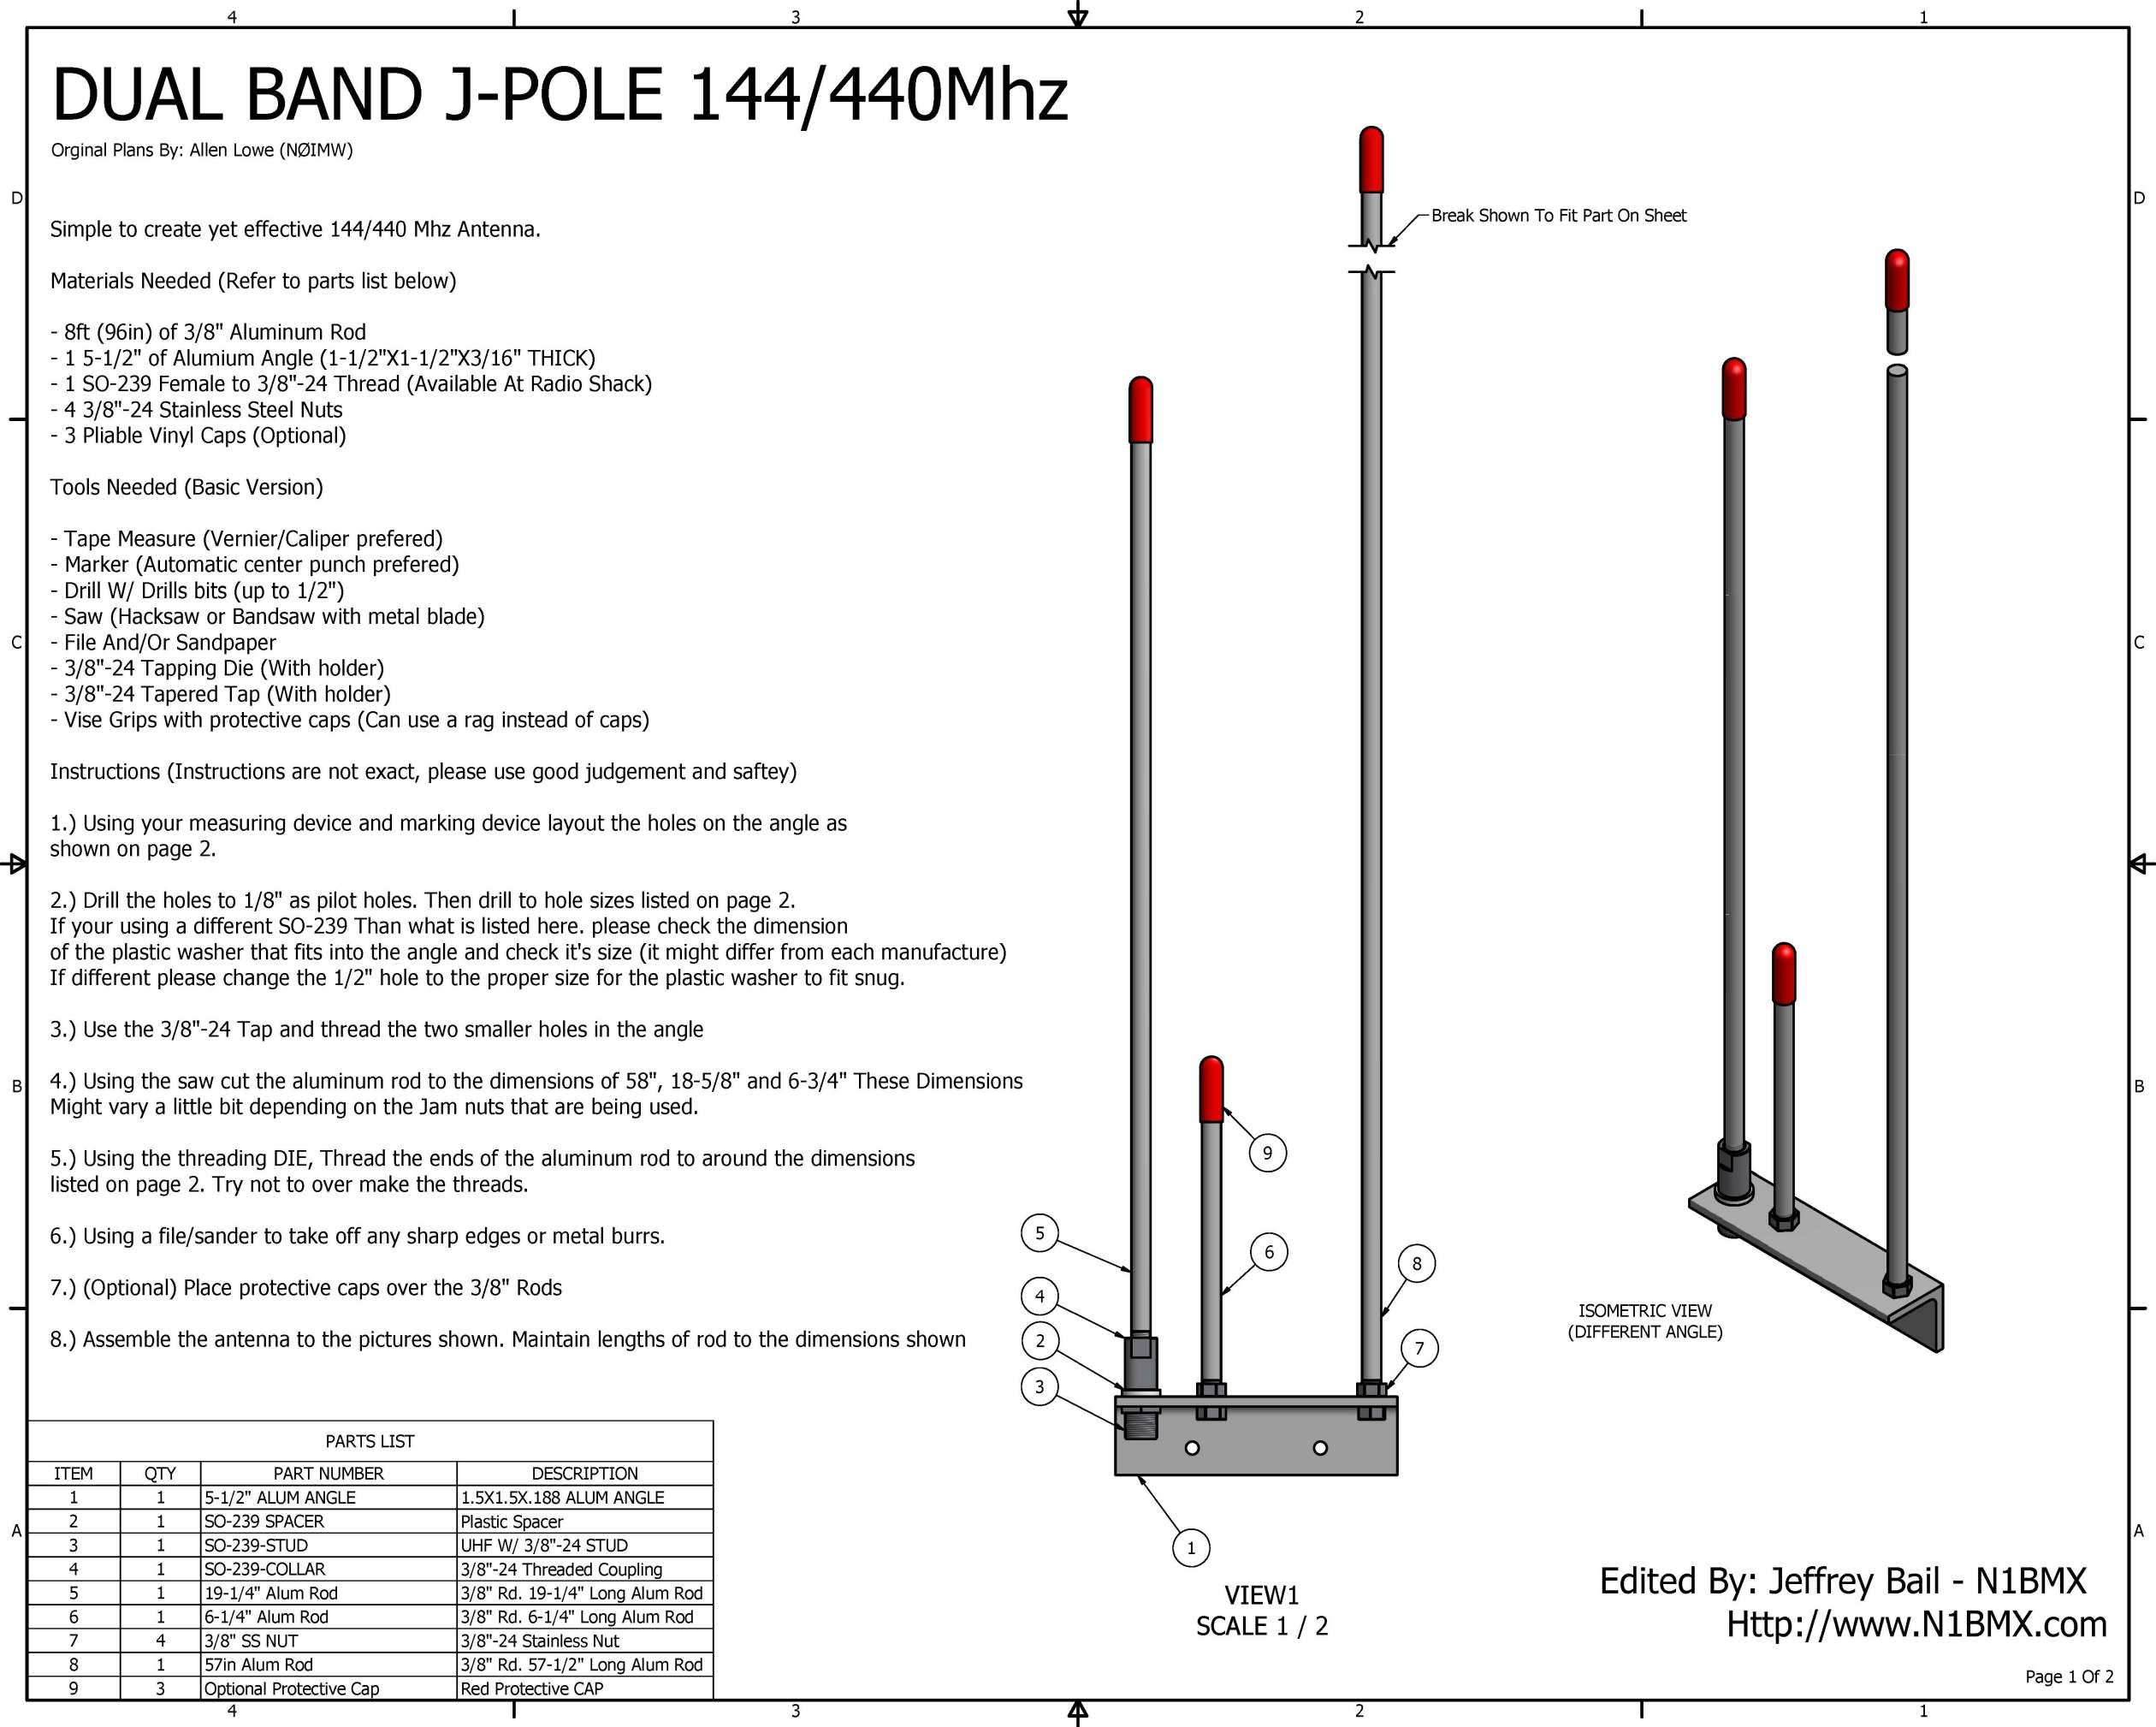 Ive Constructed A 144 440 Dual Band Open Stub J Pole Antenna I Saw July 2012 Circuitsprojects The Plans For This On Internet Link To By Allen Lowe N0imw